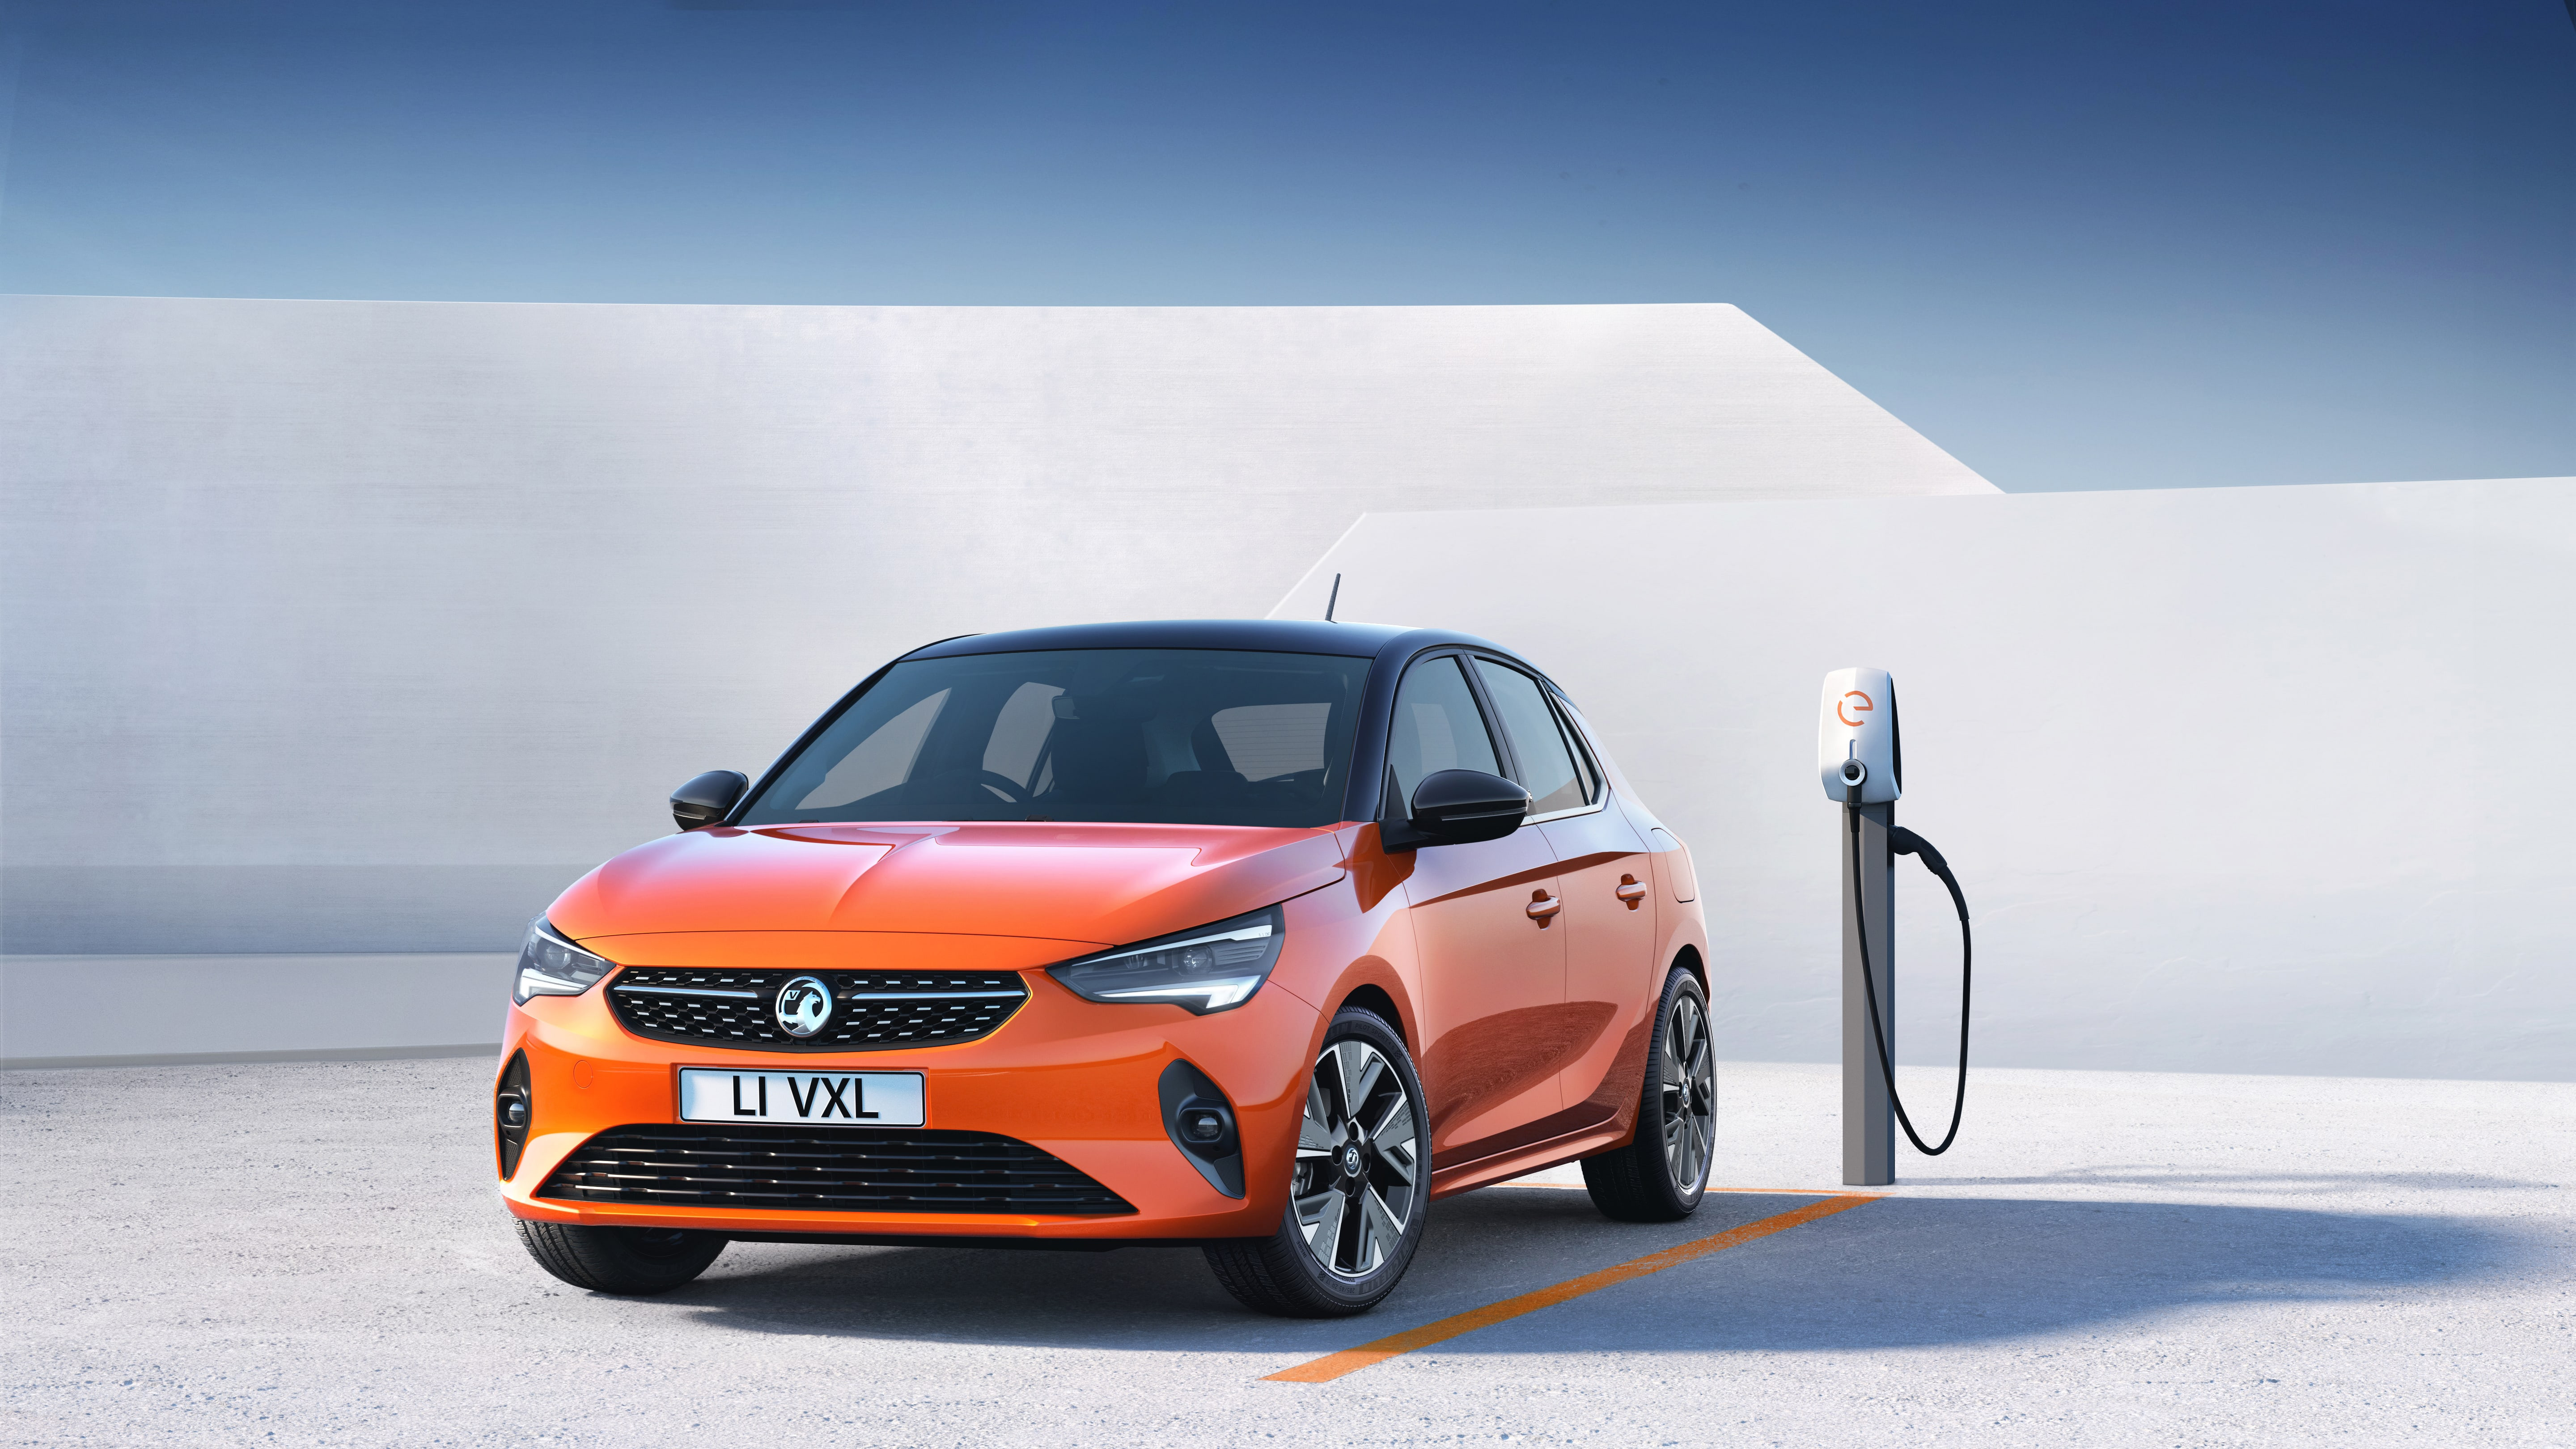 UK Electric Car Government Grant - up to £3,500 available towards the cost of a brand new electric car